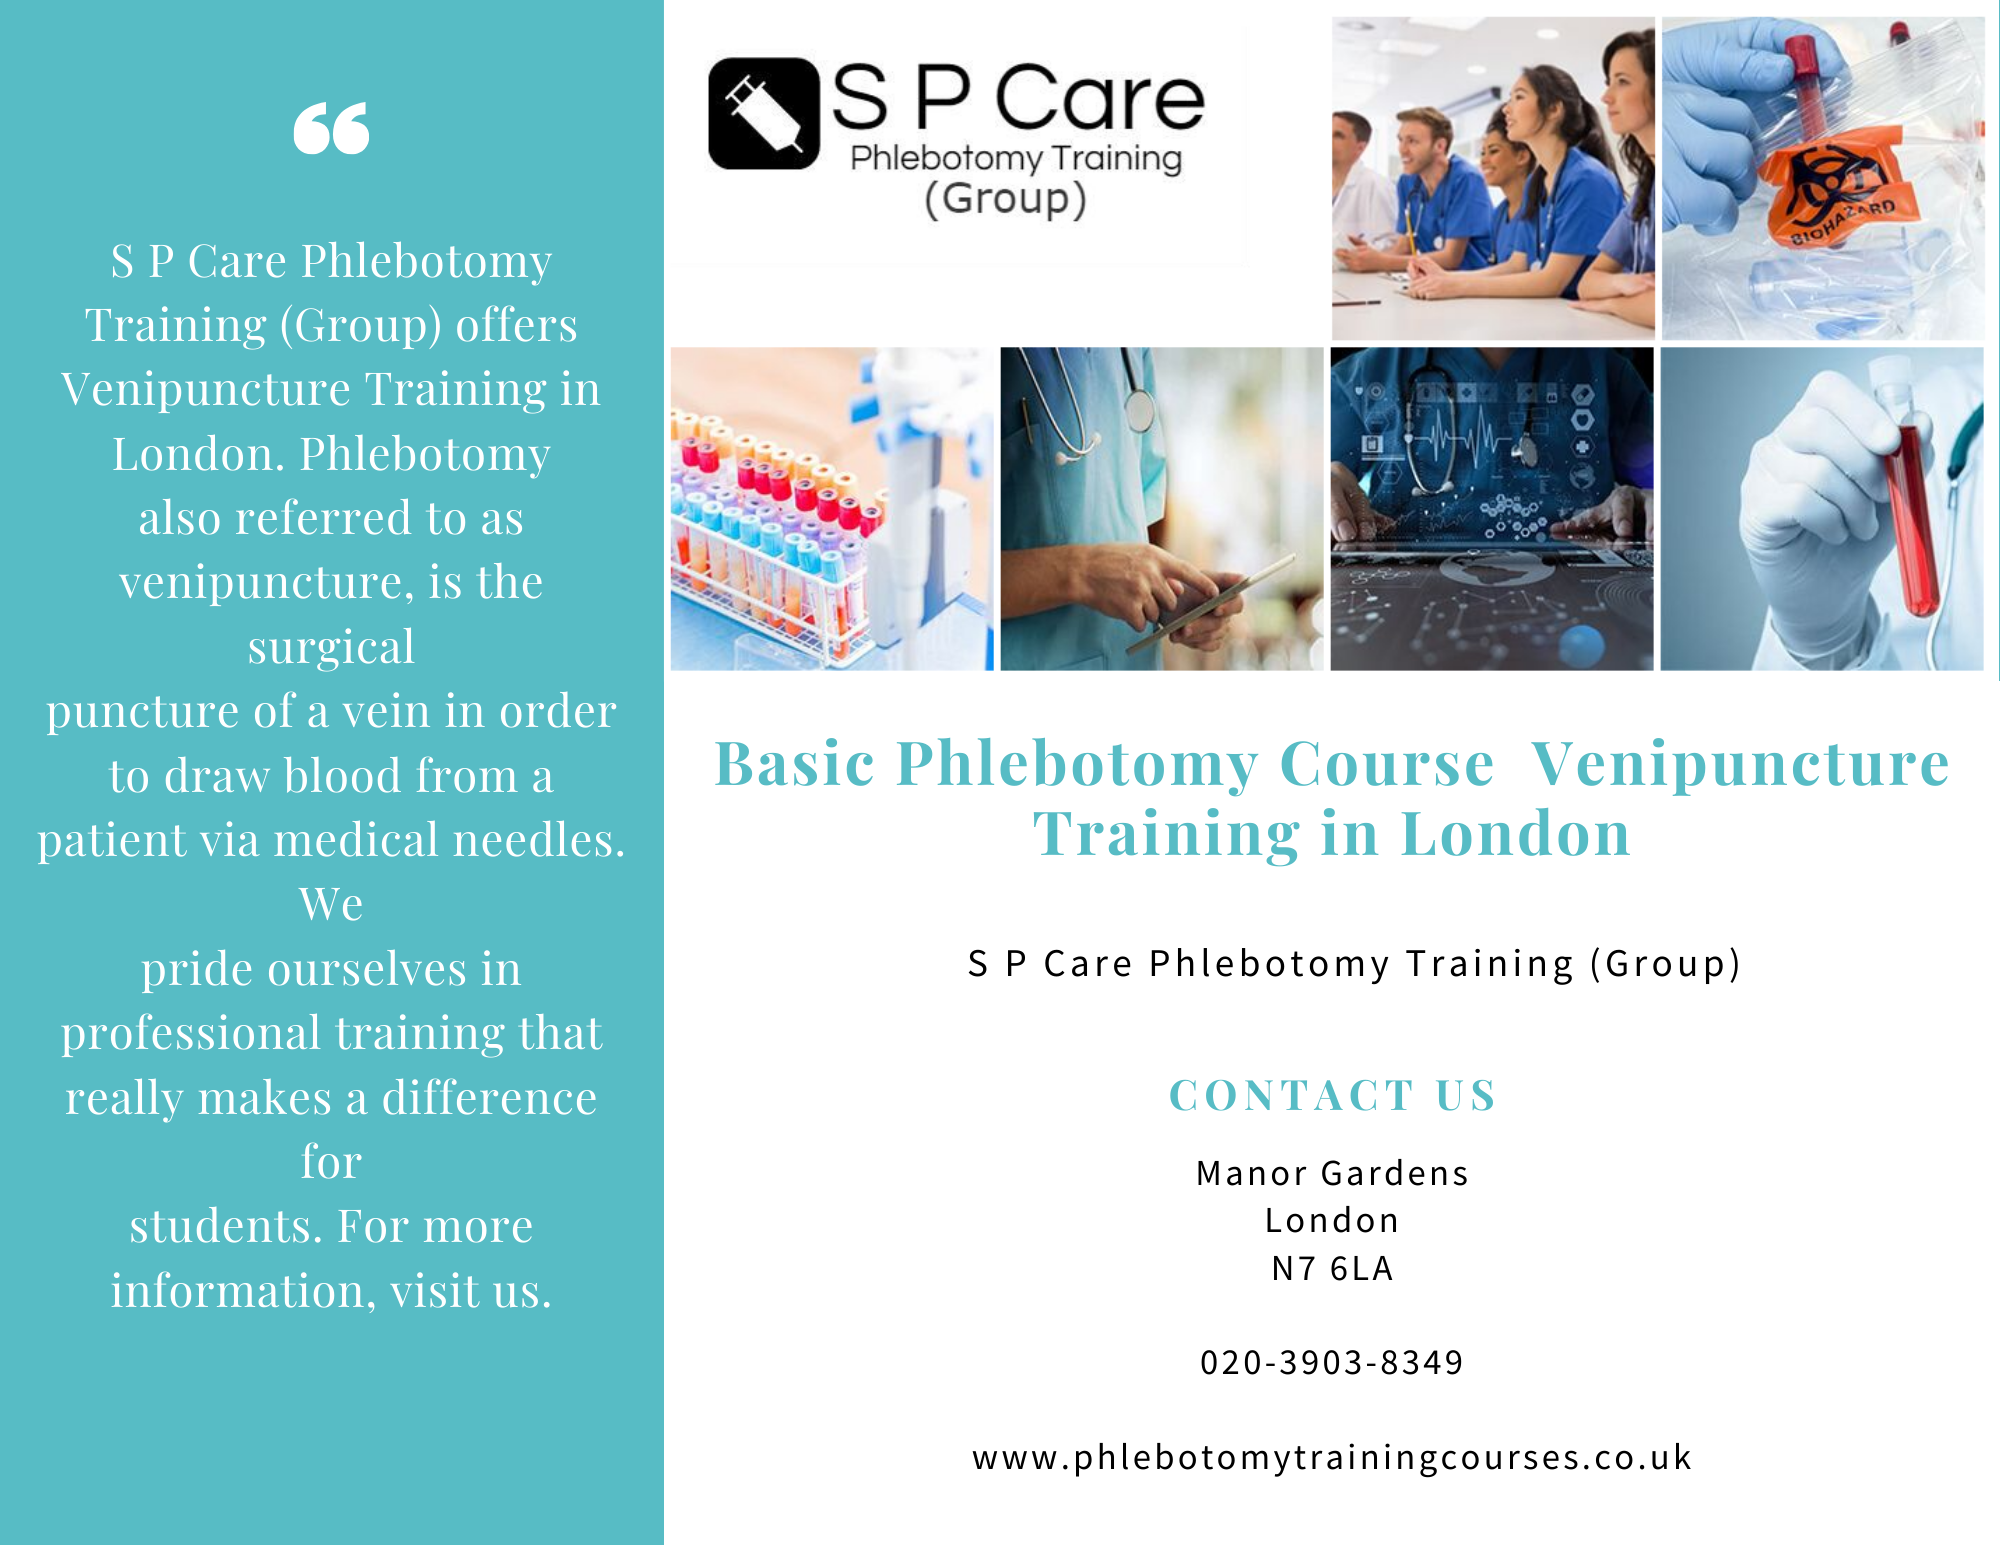 S P Care Phlebotomy Training Group Offers Venipuncture